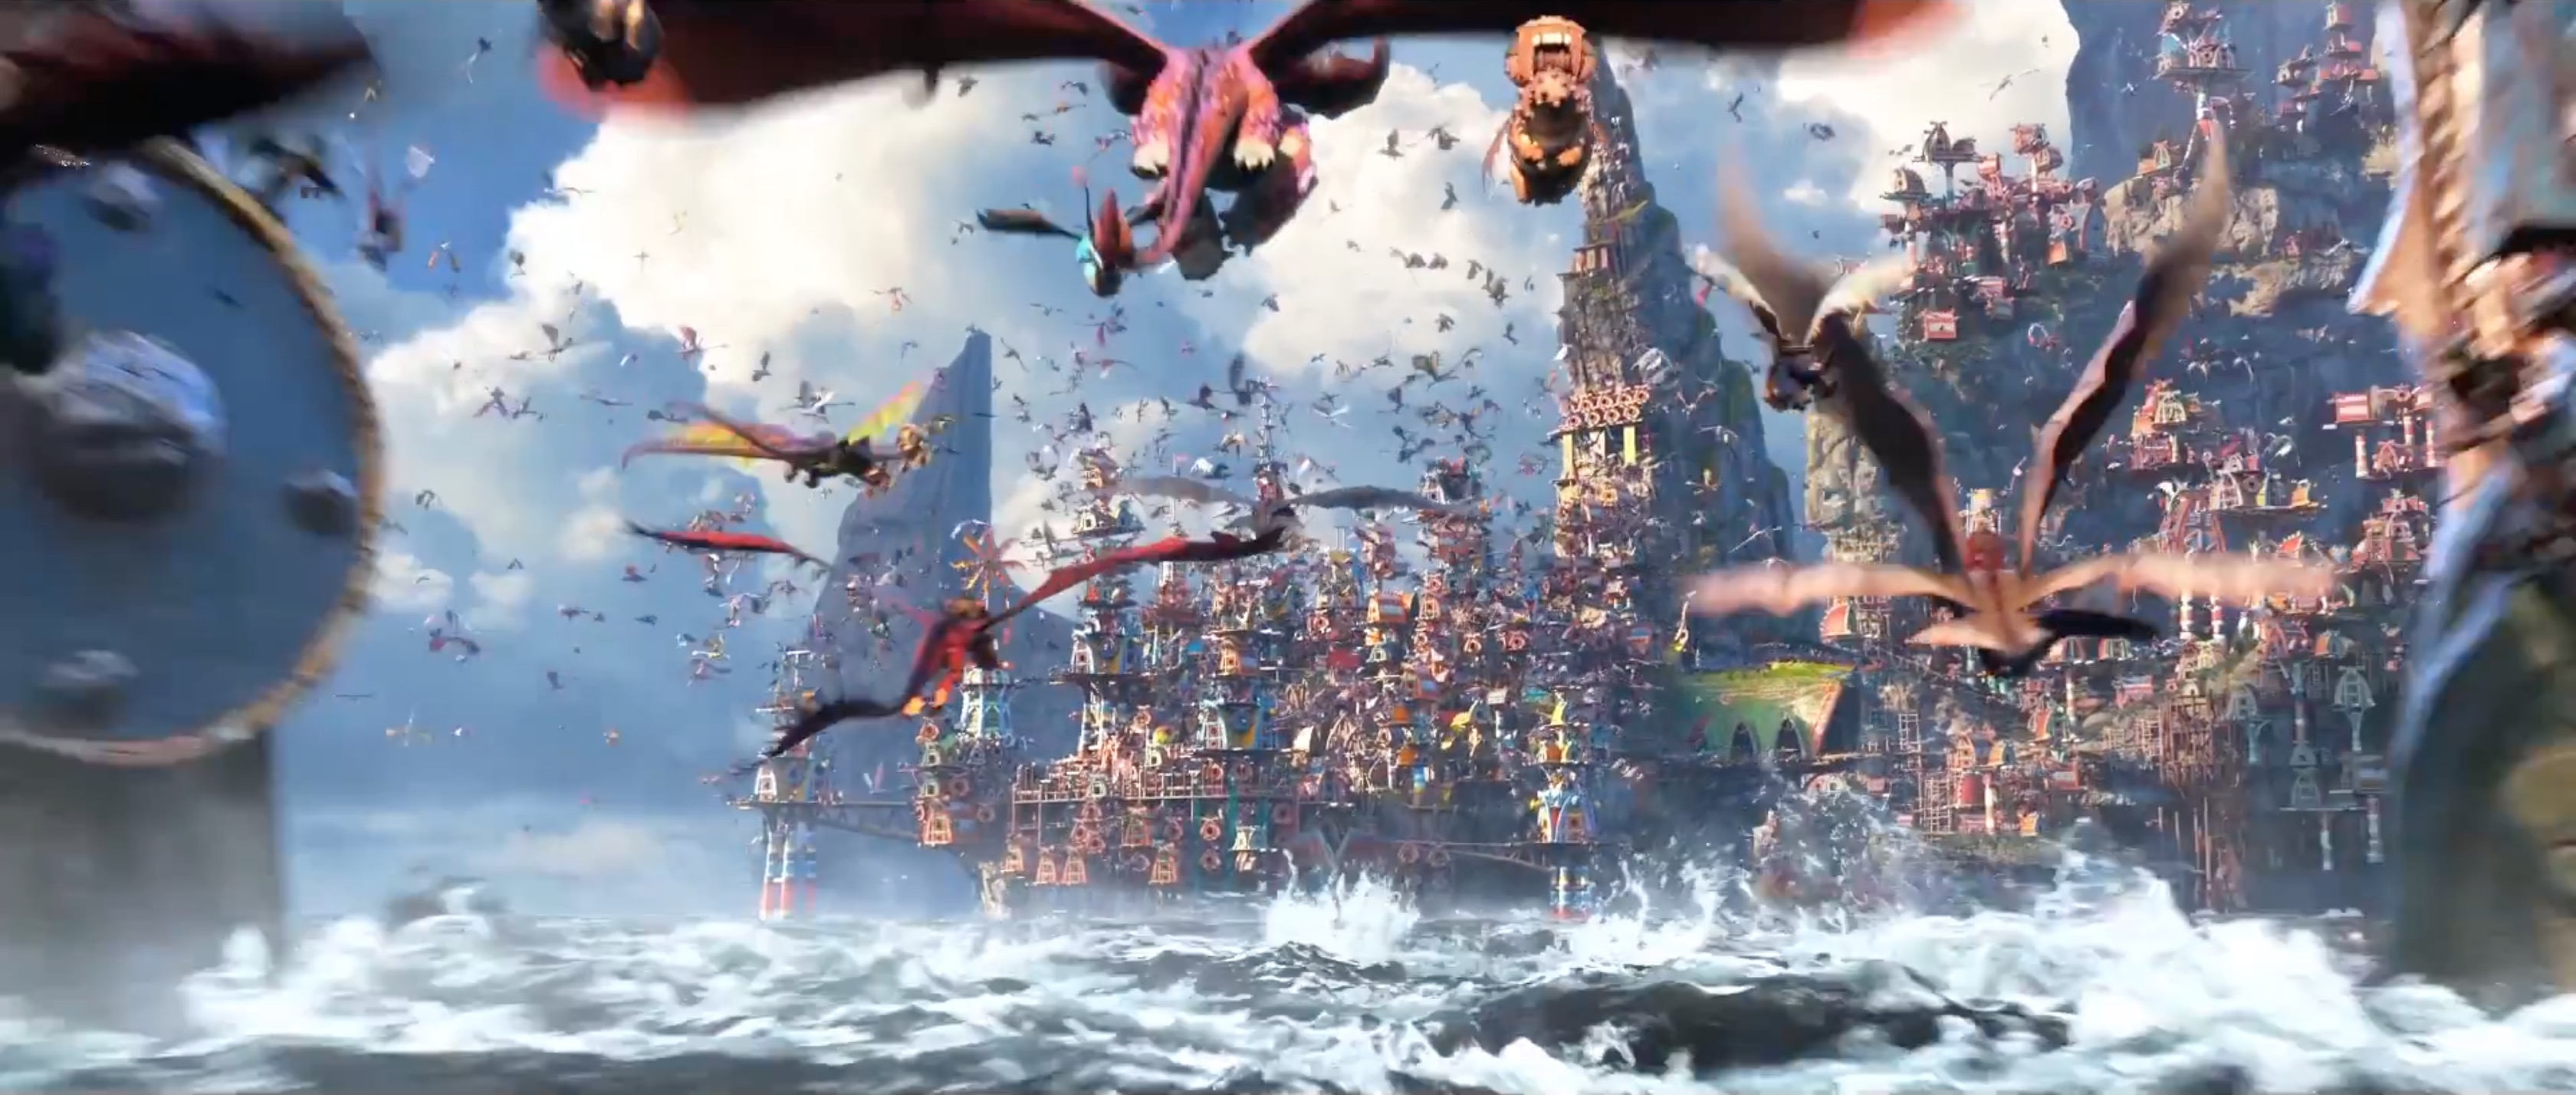 How to train your dragon 3 the hidden world official trailer ccuart Image collections